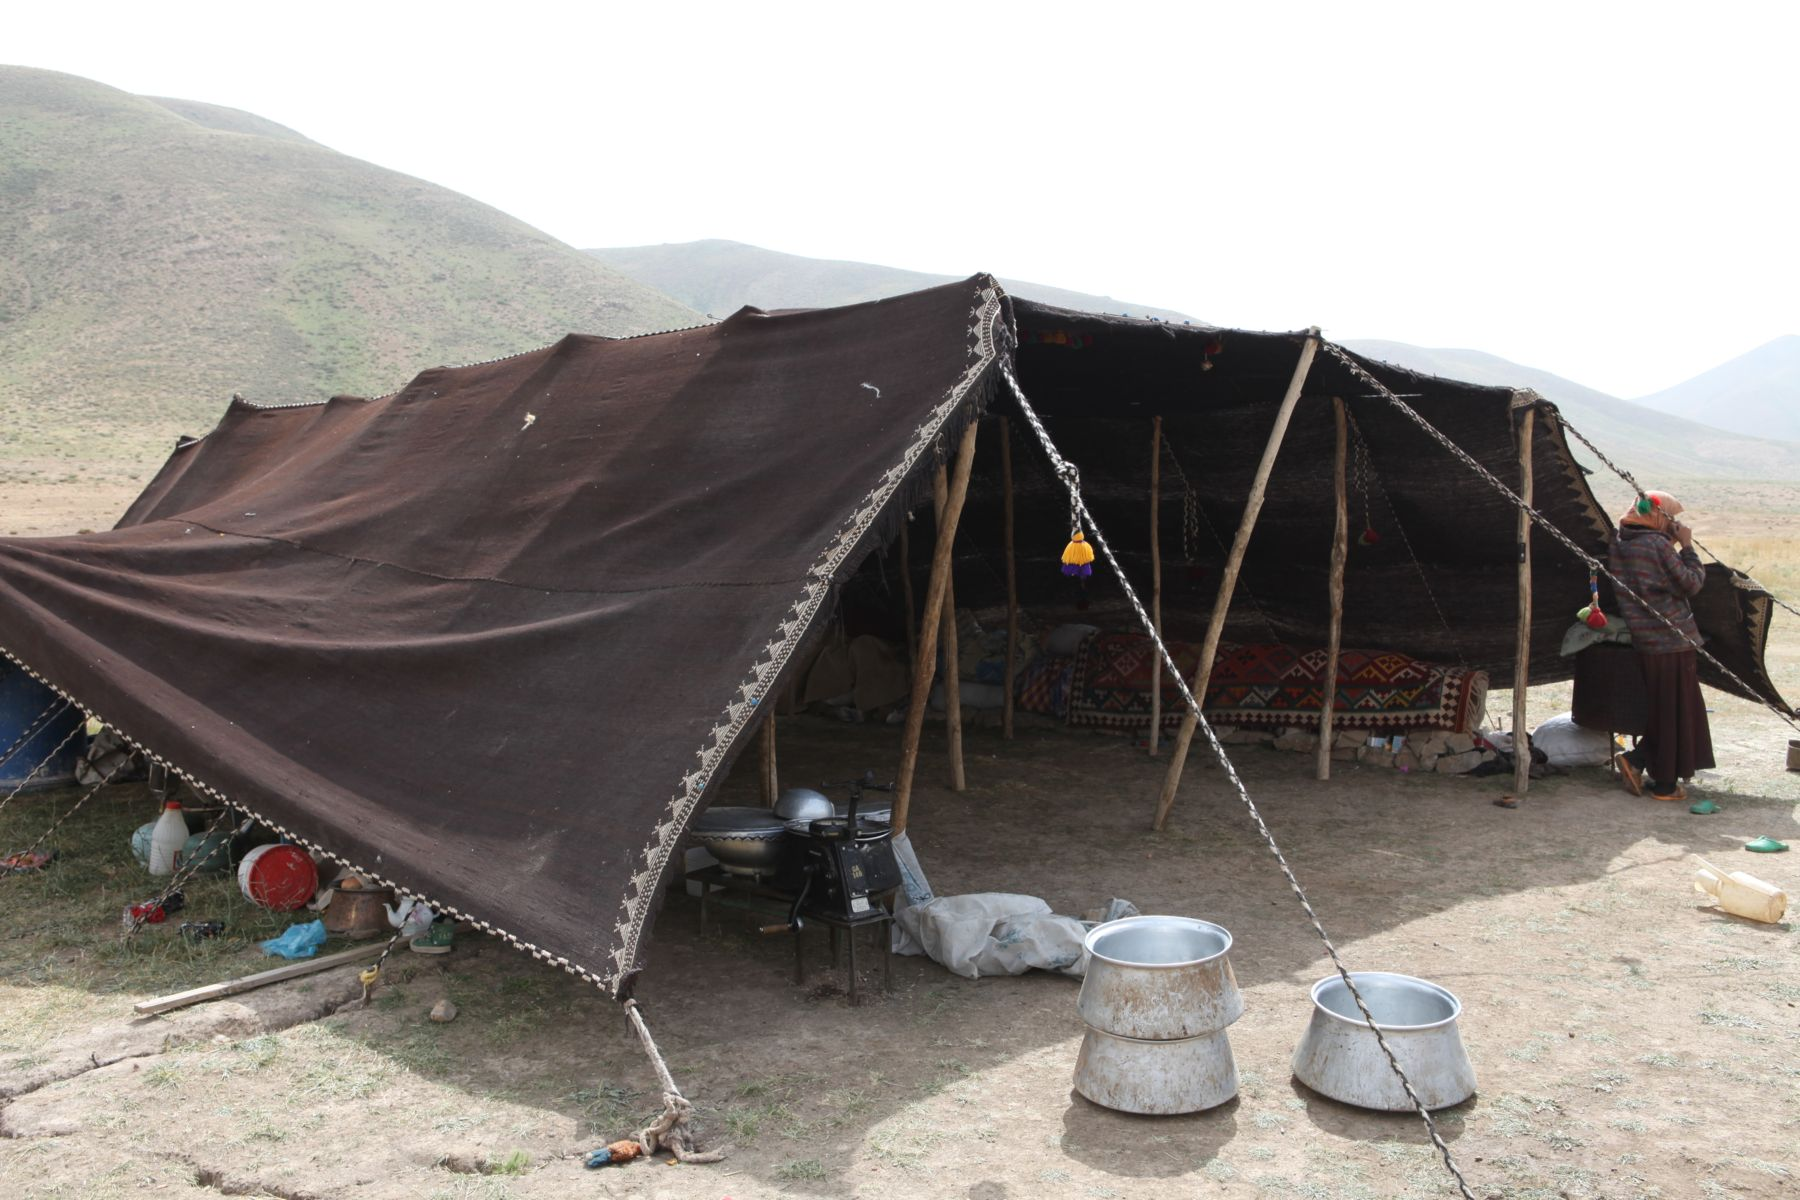 FileA Qashqai nomad tent in Isfahan Province.jpg  sc 1 st  Wikimedia Commons & File:A Qashqai nomad tent in Isfahan Province.jpg - Wikimedia Commons